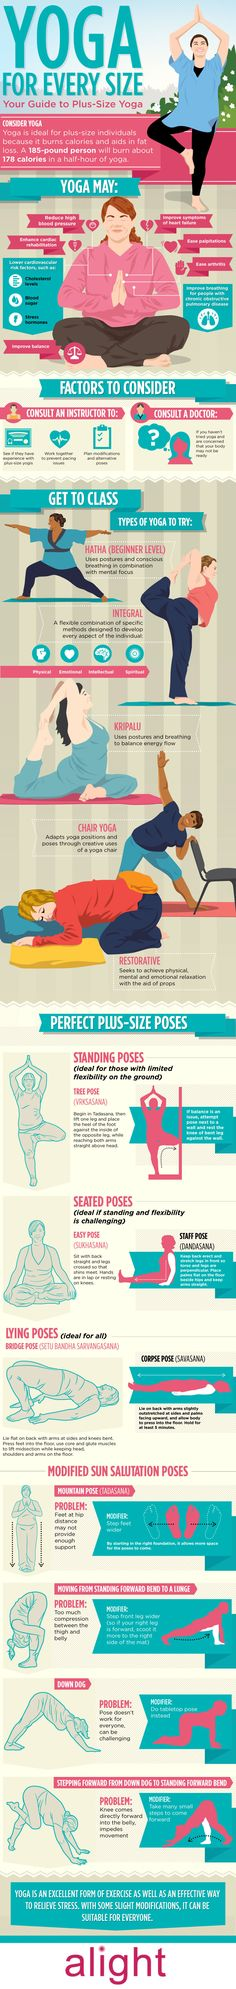 Yoga for Every Size: Your Guide to Plus Size Yoga #infographic #Yoga #Health